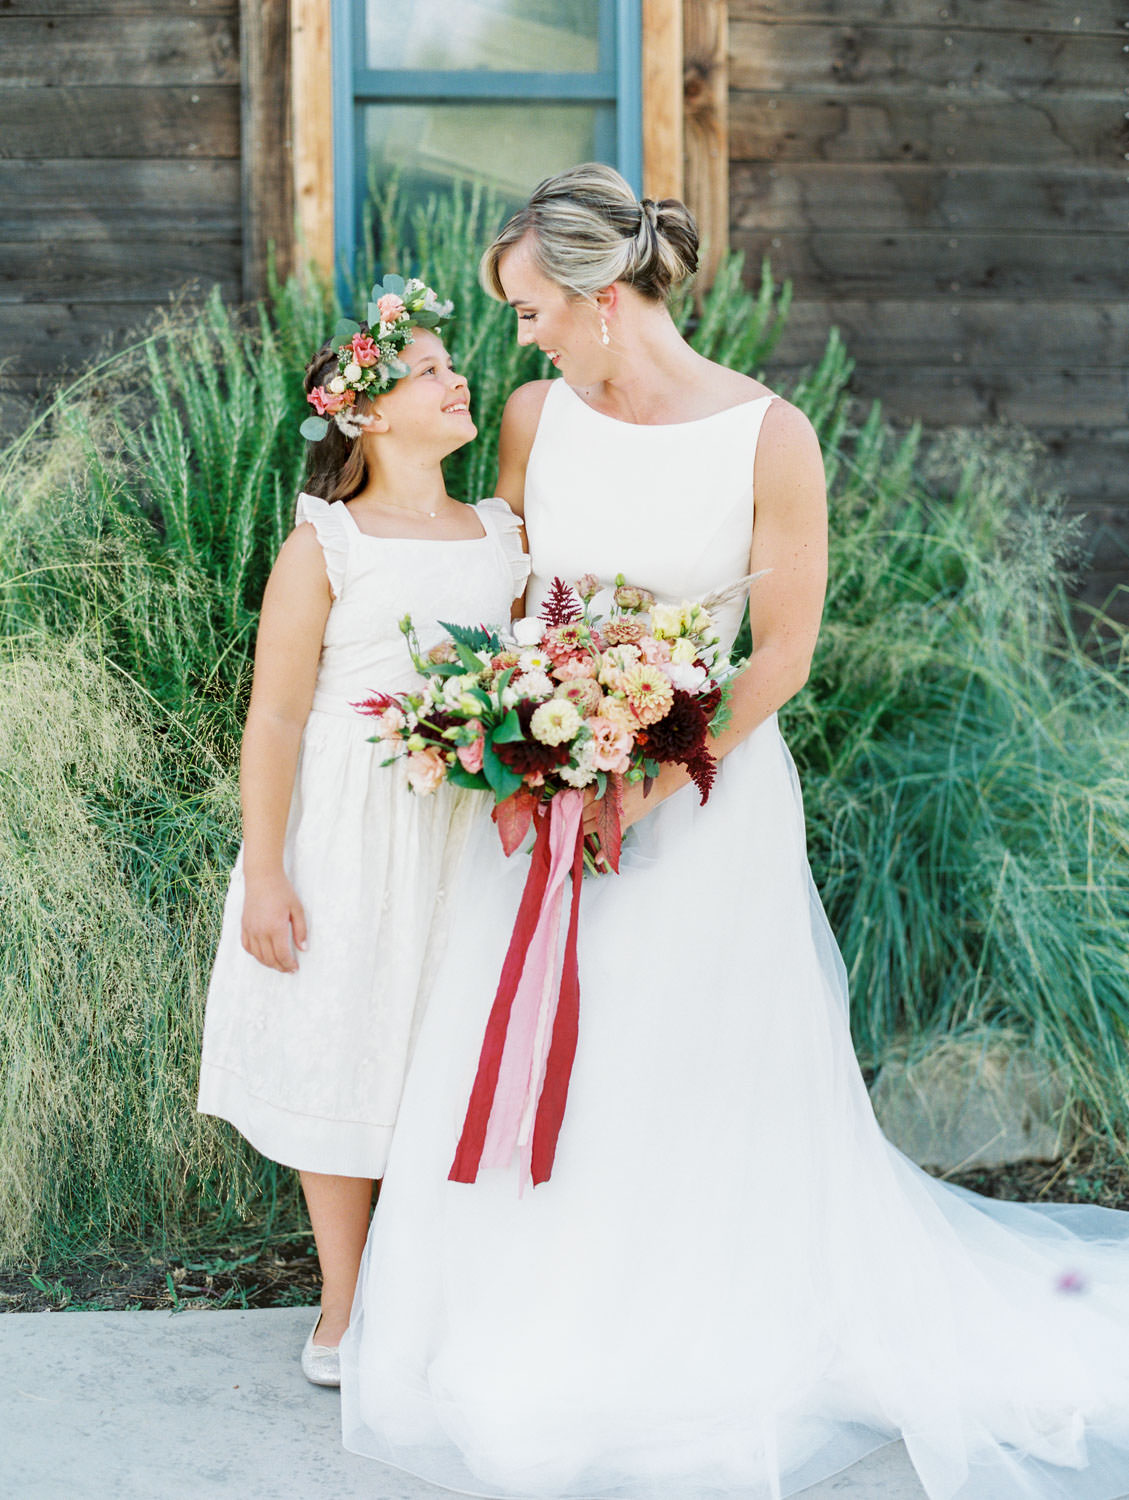 Flower girl in floral crown smiling at the bride in a classic Mikaella Bridal gown holding her bridal bouquet with ivory, peach, wine, blush flowers and mauve, wine, and blush ribbons. Martha Stewart Weddings by film photographer Cavin Elizabeth Photography